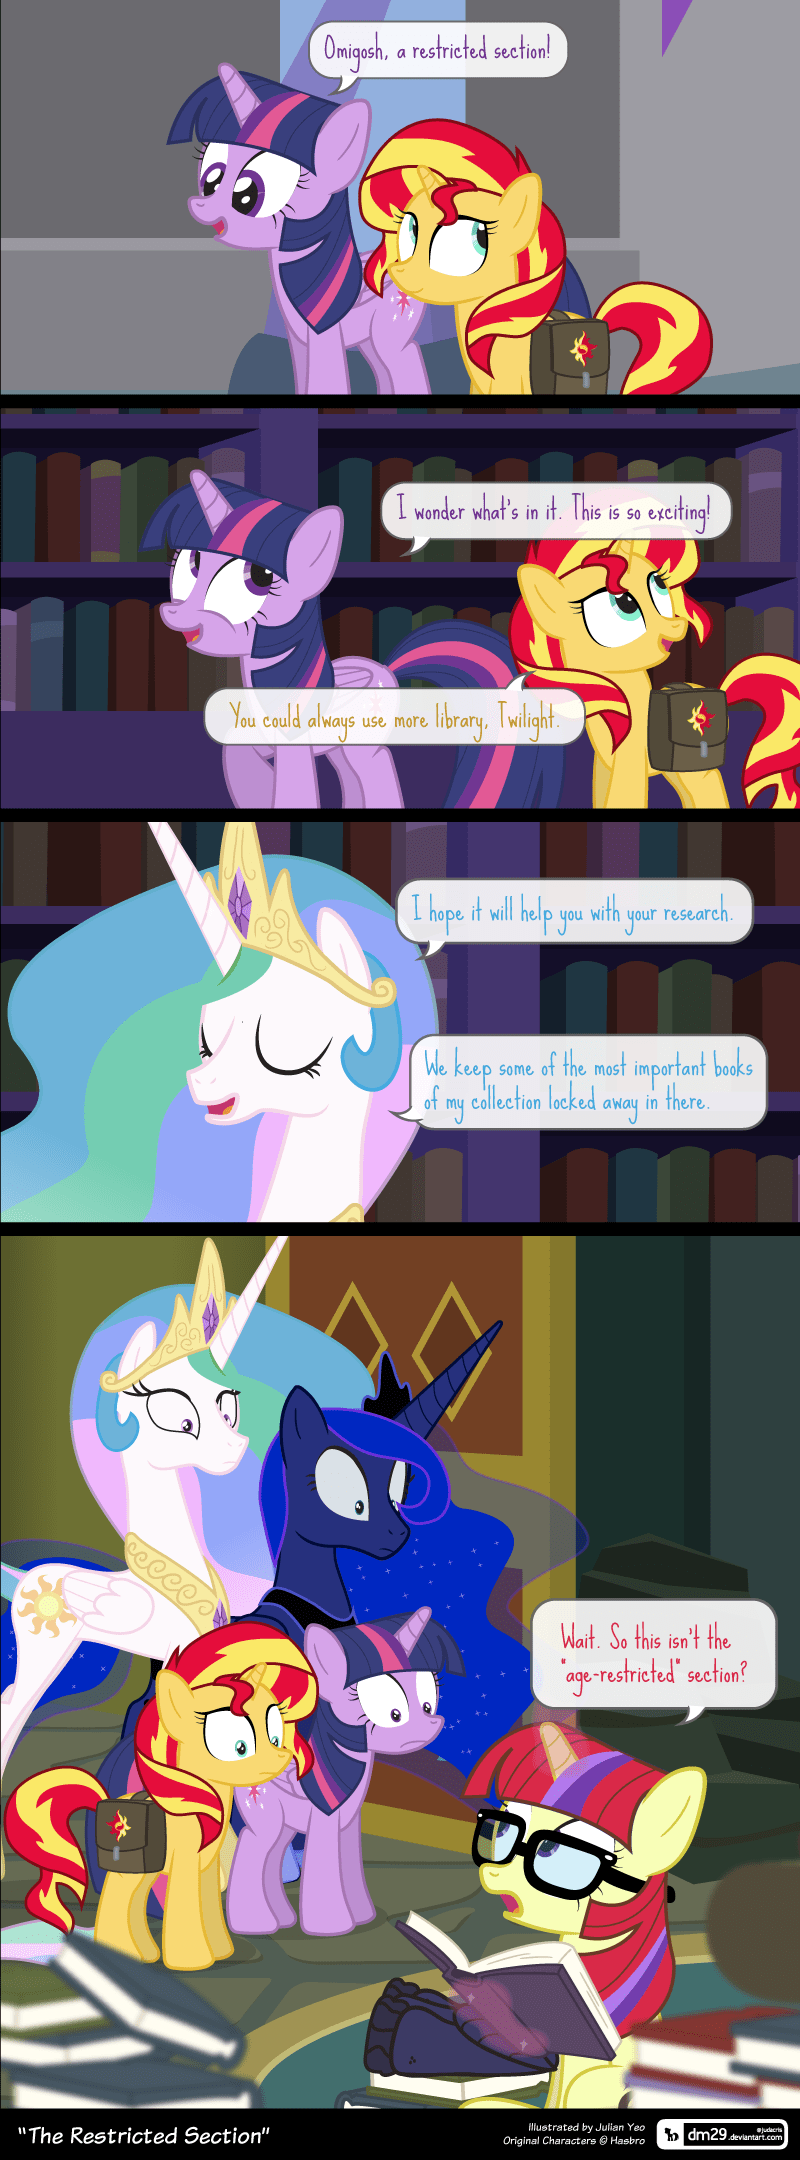 forgotten friendship equestria girls moon dancer twilight sparkle dm29 princess luna comic princess celestia sunset shimmer - 9131120128